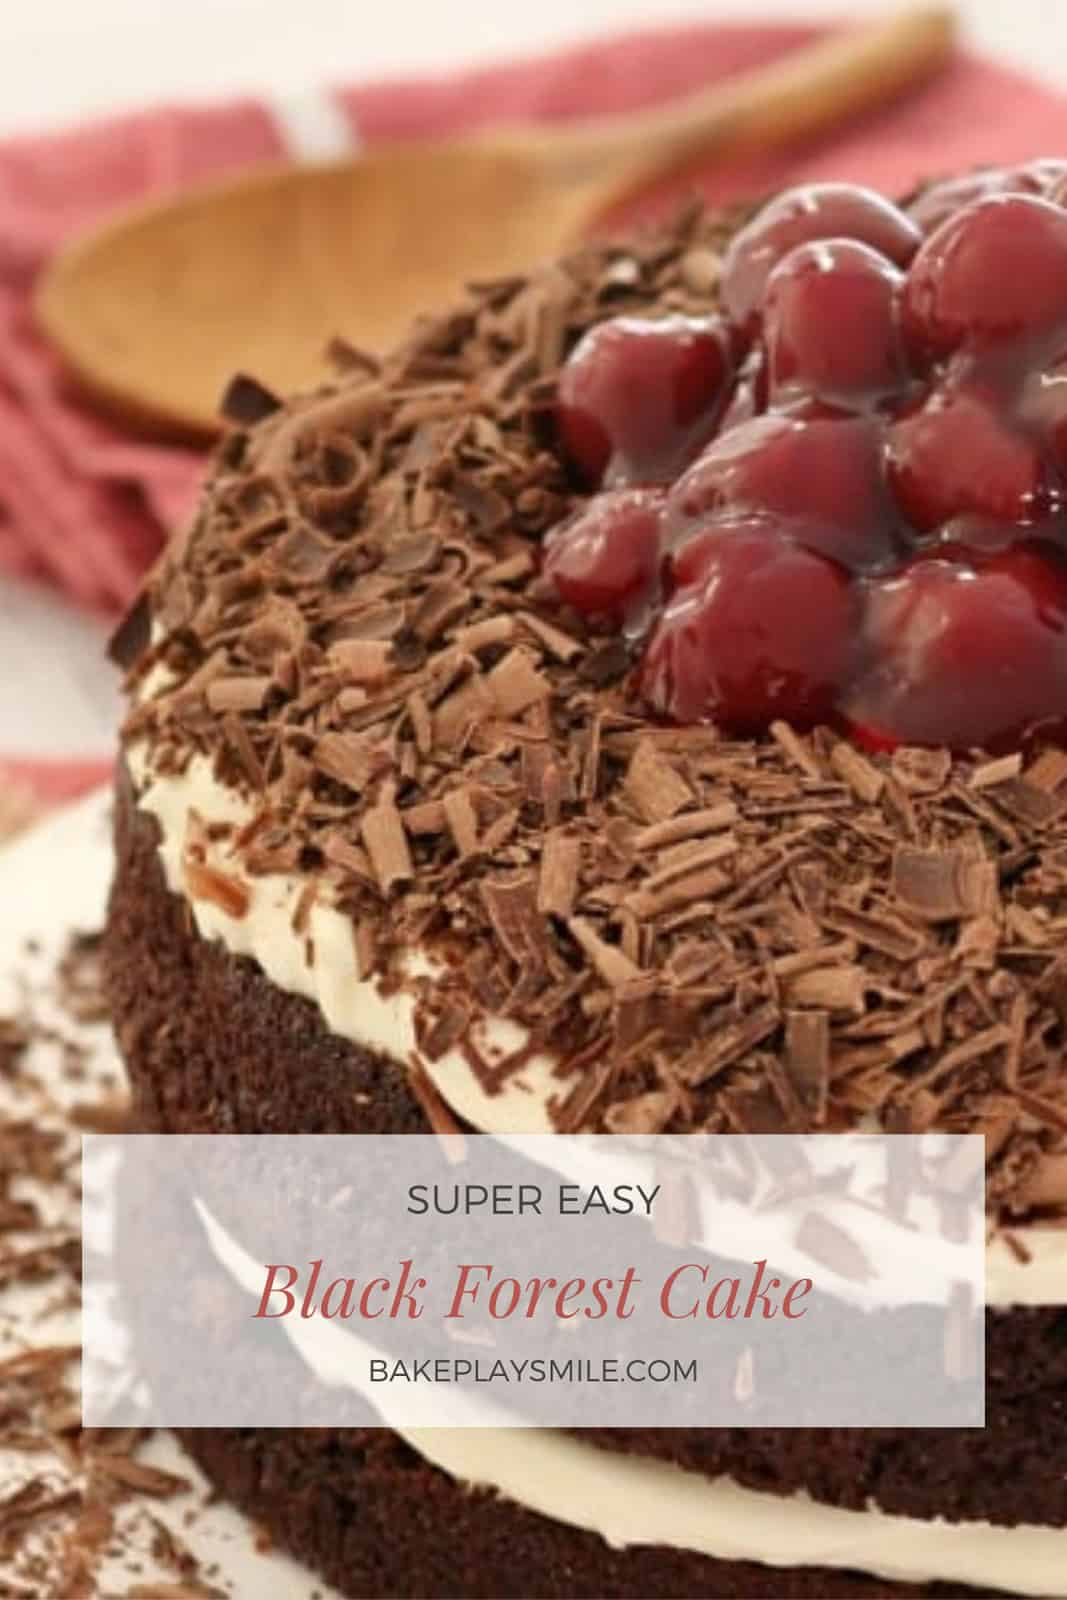 A close up of a Black Forest layered chocolate cake with whipped cream, grated chocolate and syrupy cherries piled on top.